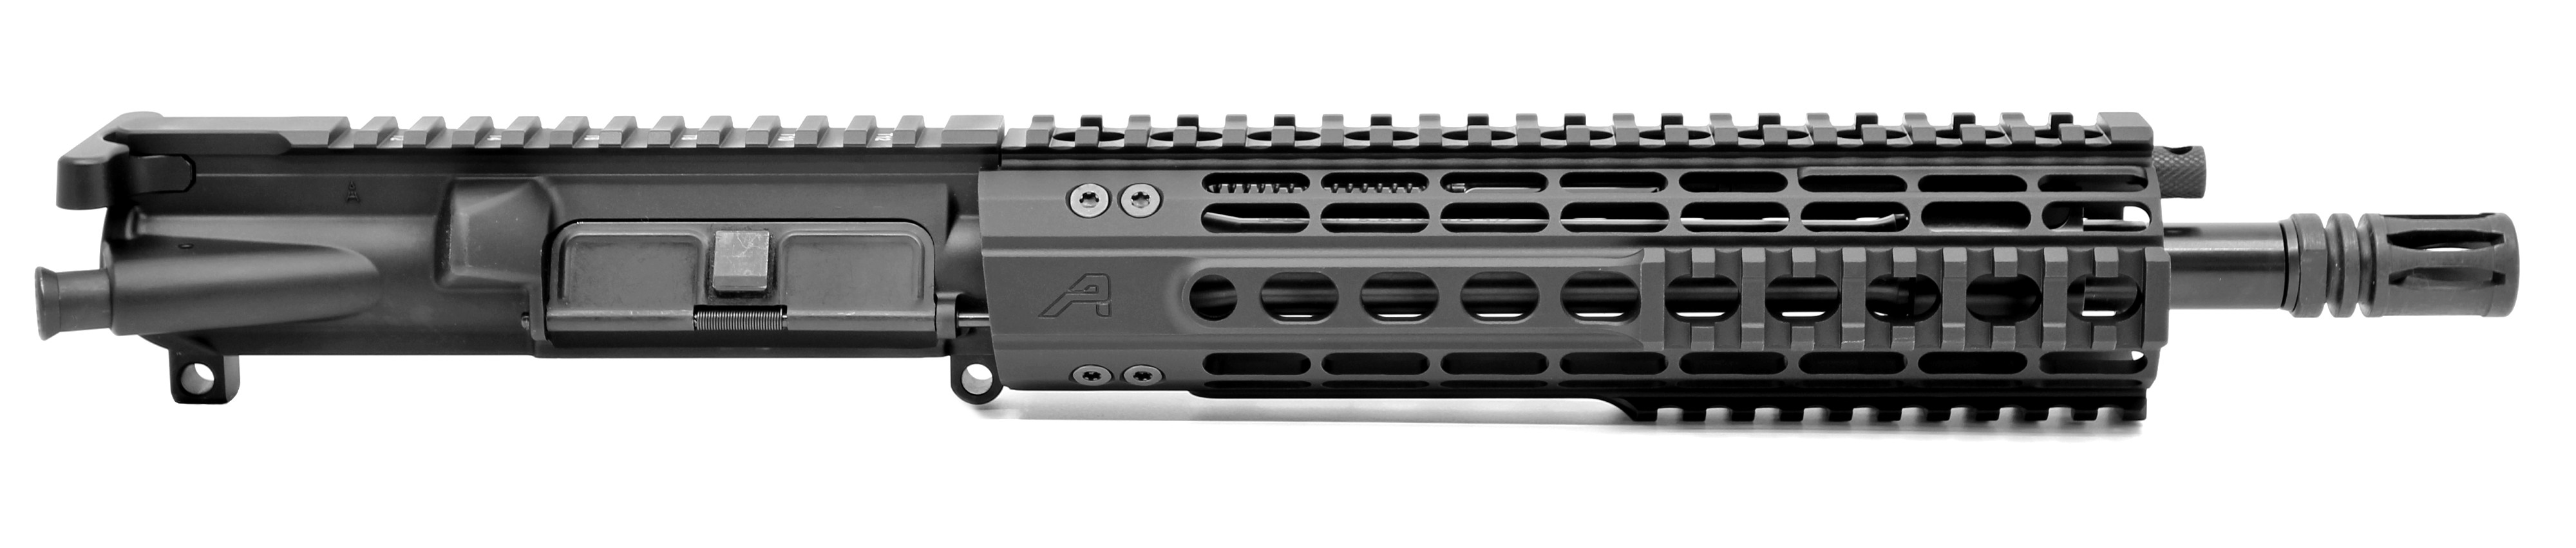 Low Profile Regulated Piston Upper, Aero Precision M-Lok Rail